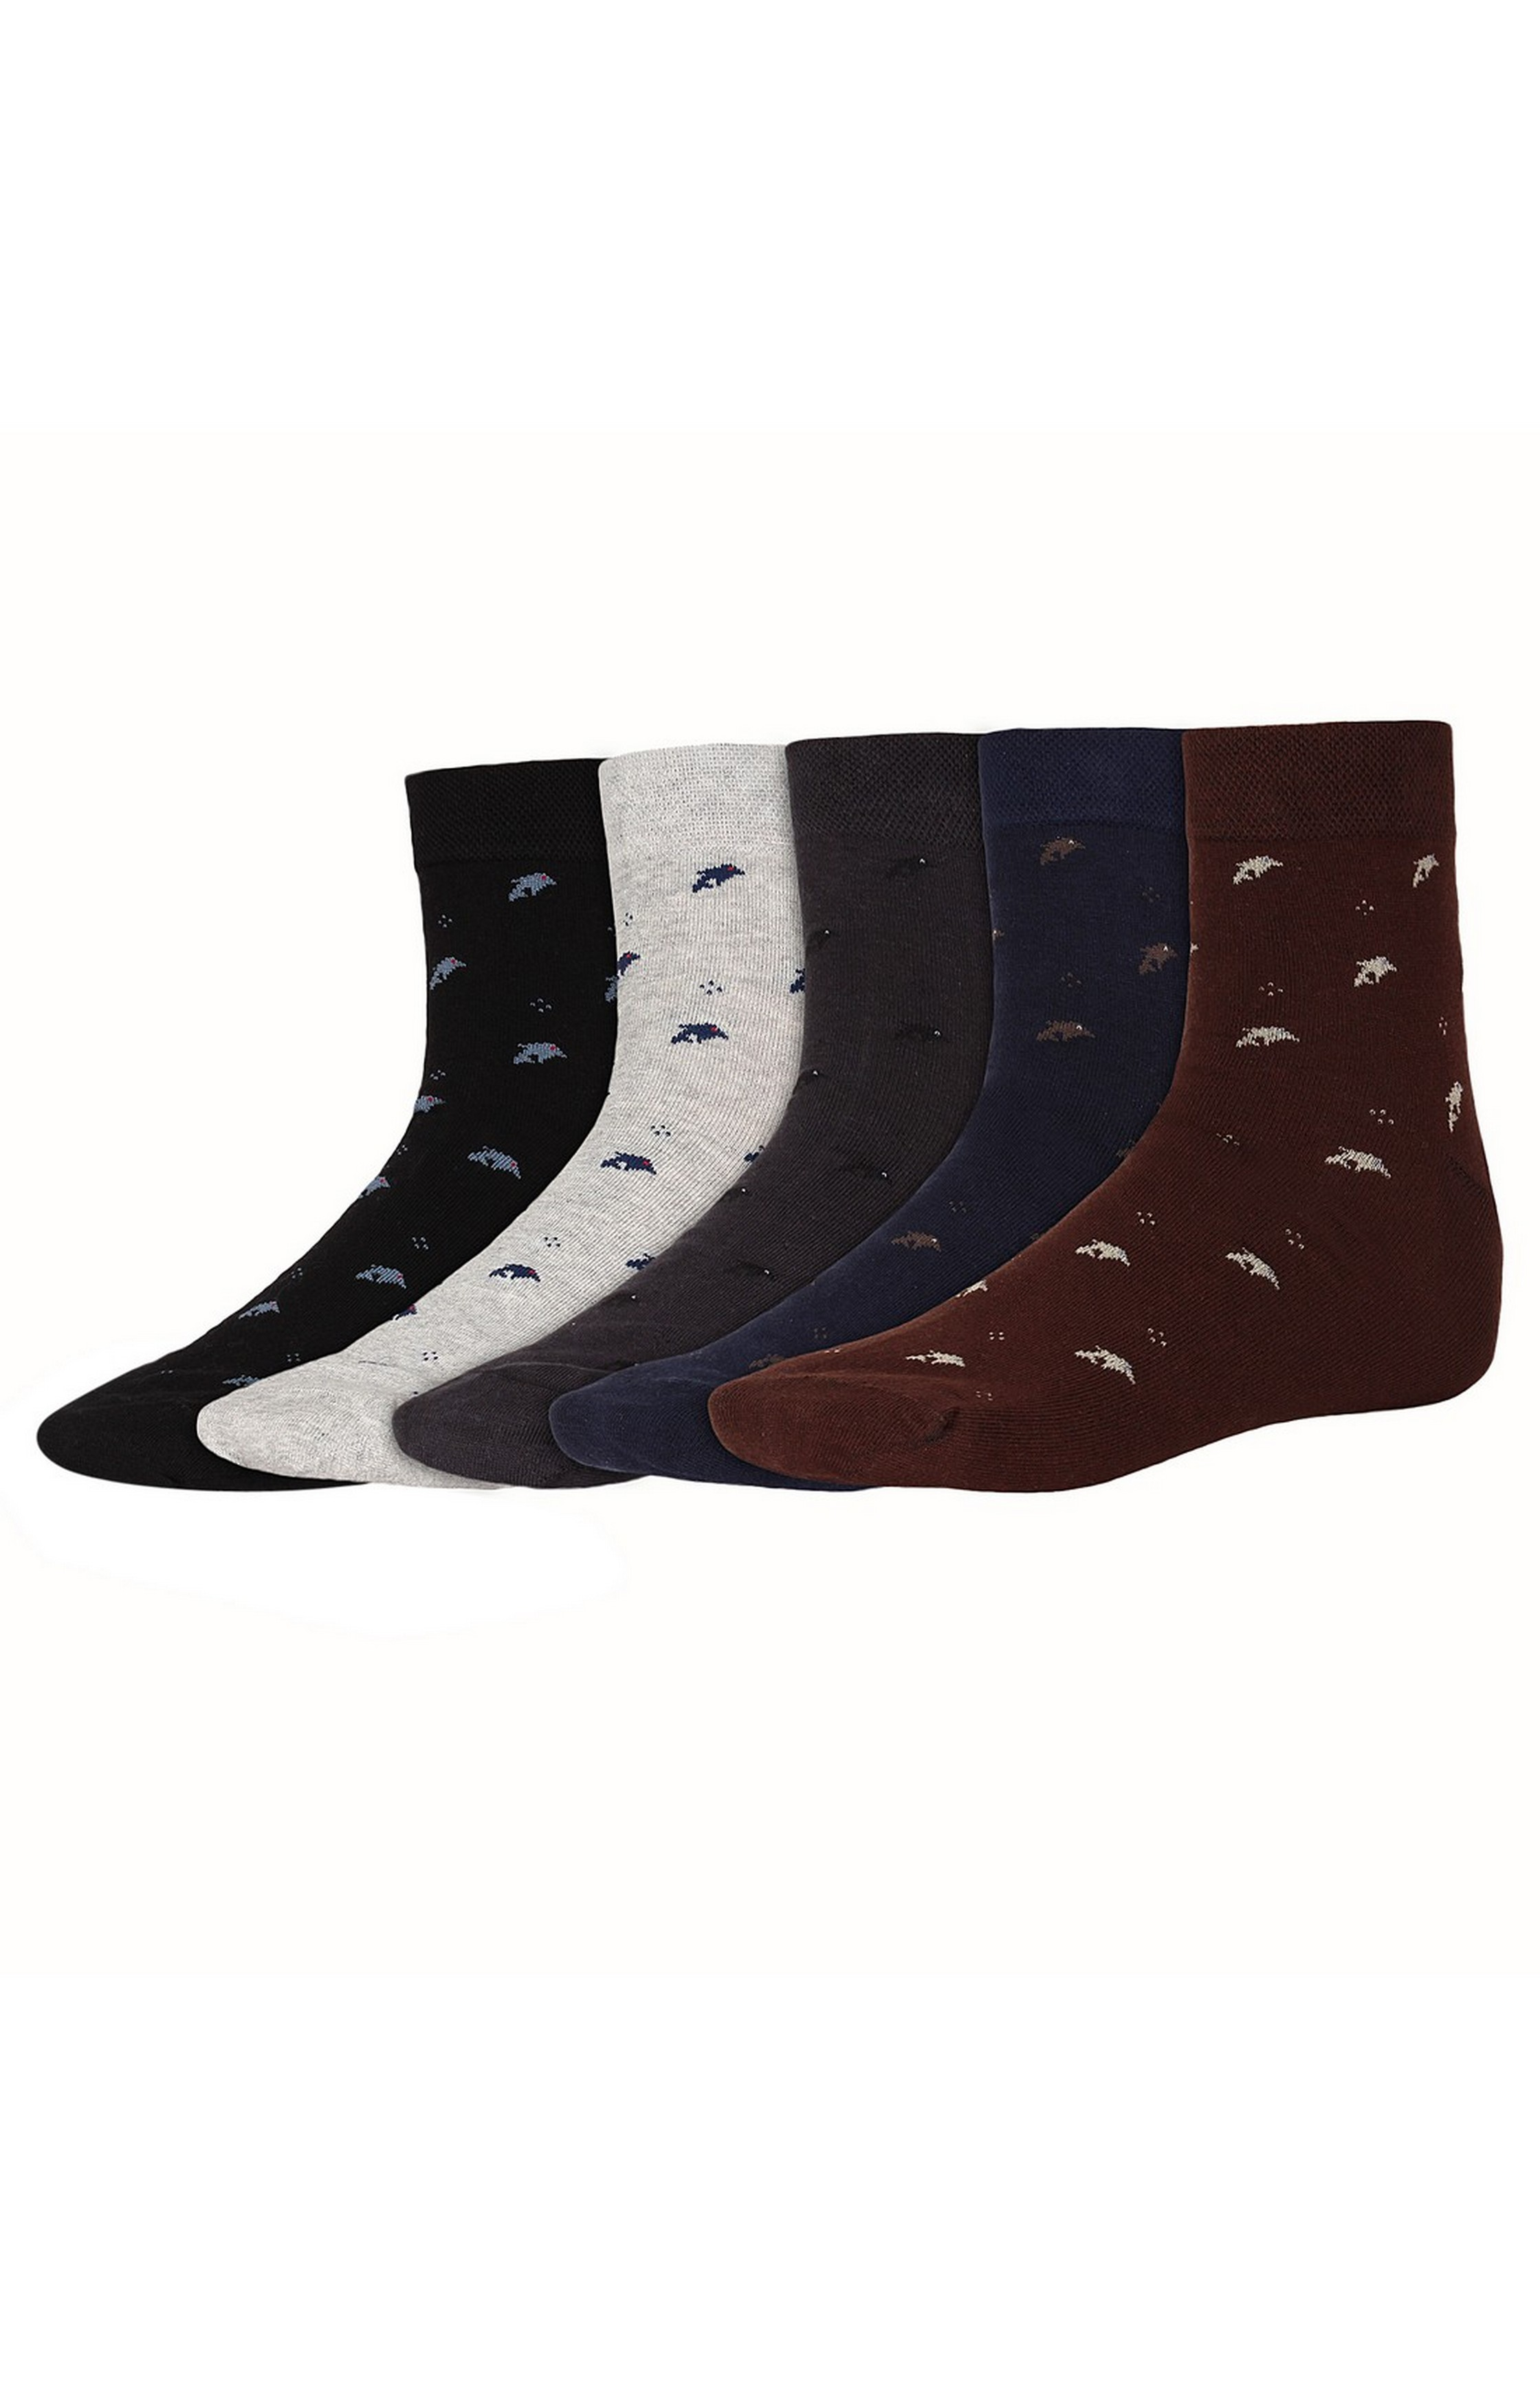 SIDEWOK | SIDEWOK Ankle Length Printed Multicolour Cotton Socks for Men (Pack of 5 Pairs)